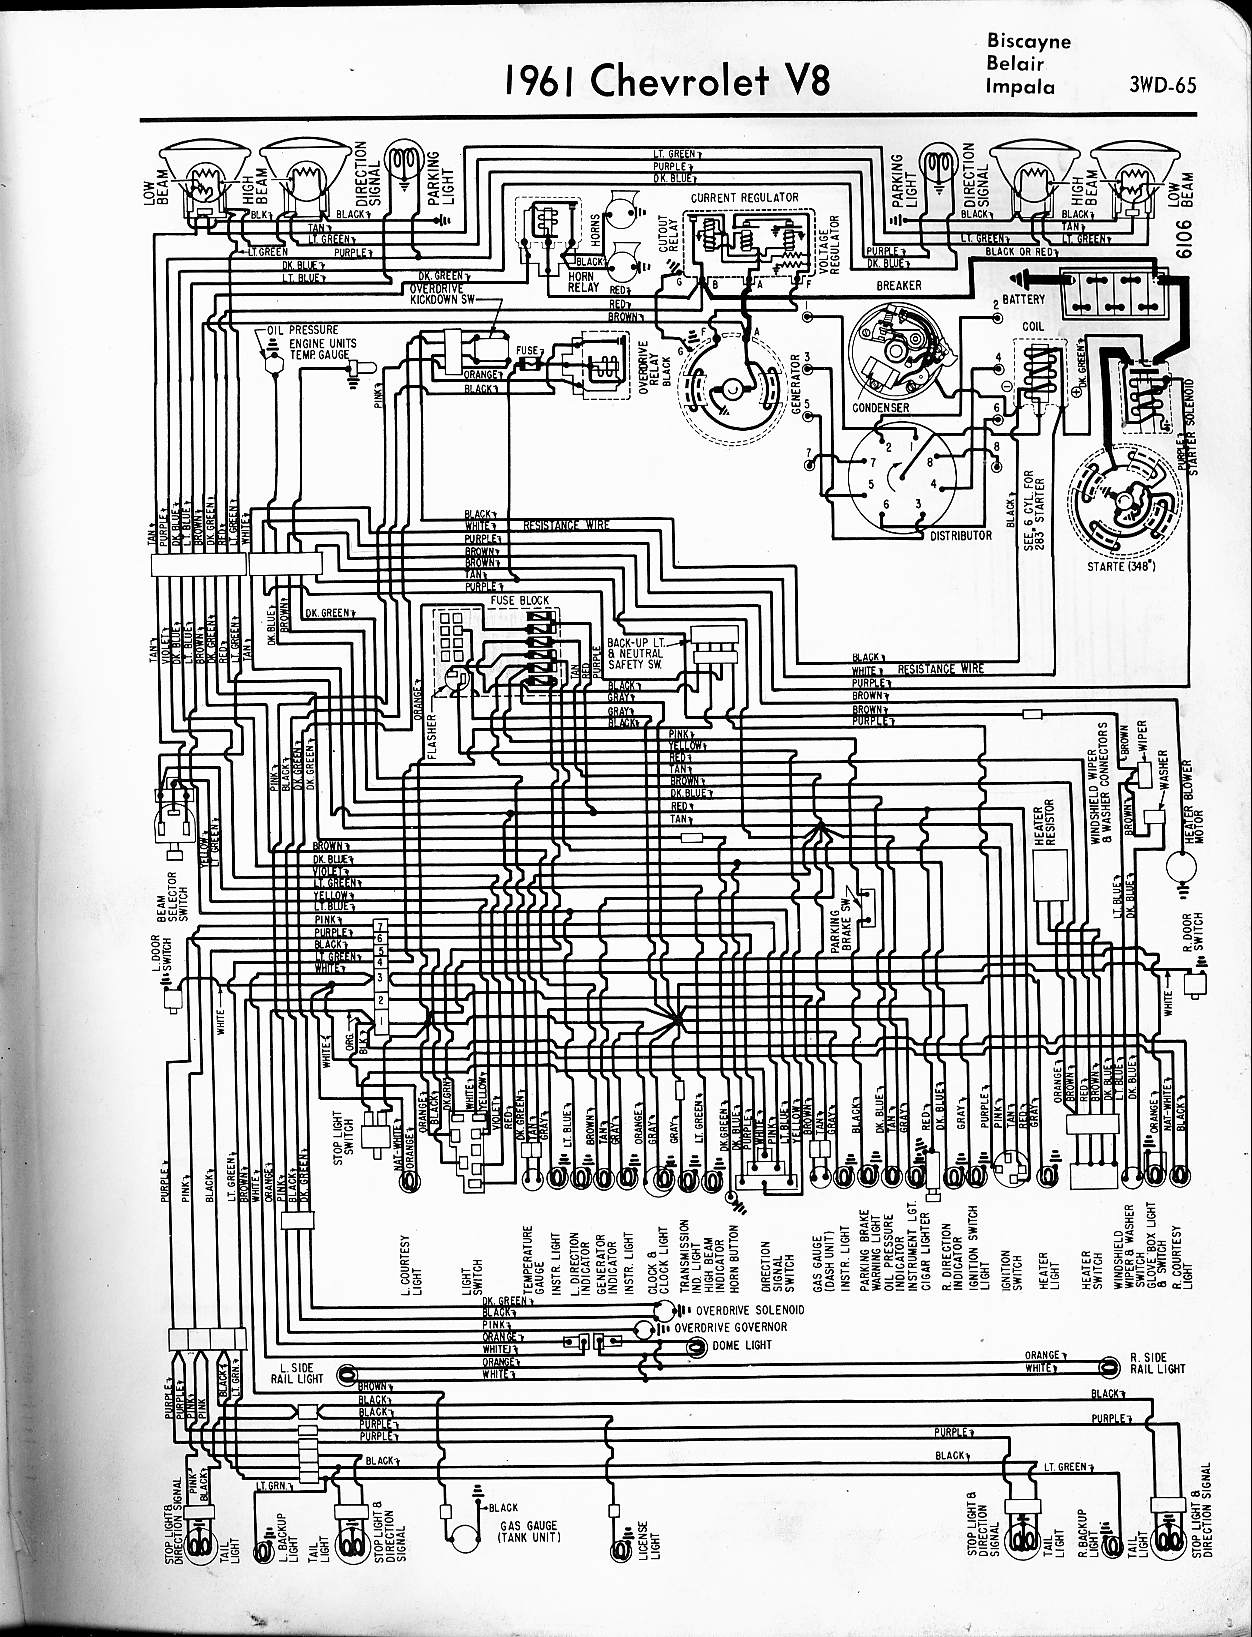 1967 Chevy Impala Wiring Diagram Bookmark About 1964 Truck Pdf Also Rh 2 18 6 Tokyo Running Sushi De